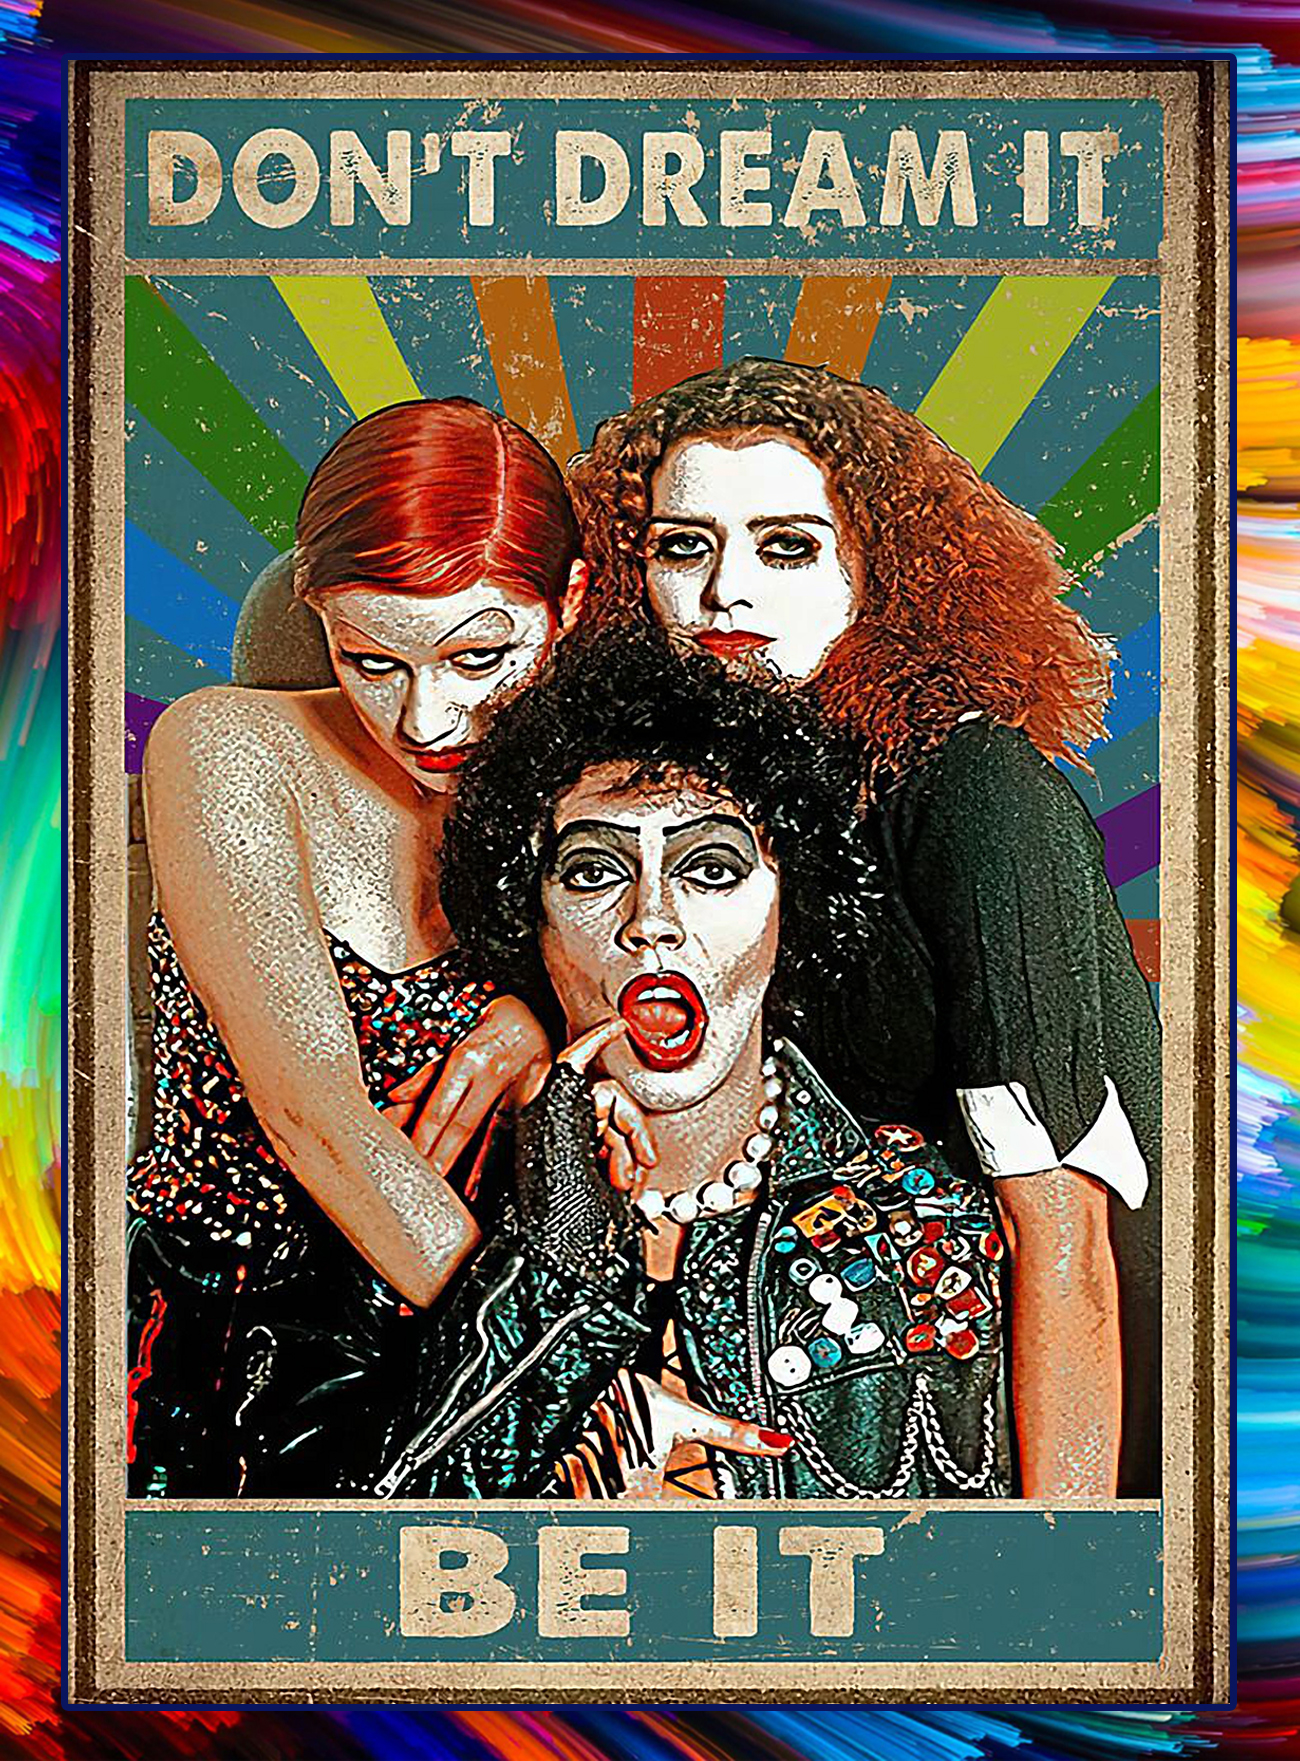 Rocky horror picture show don't dream be it poster